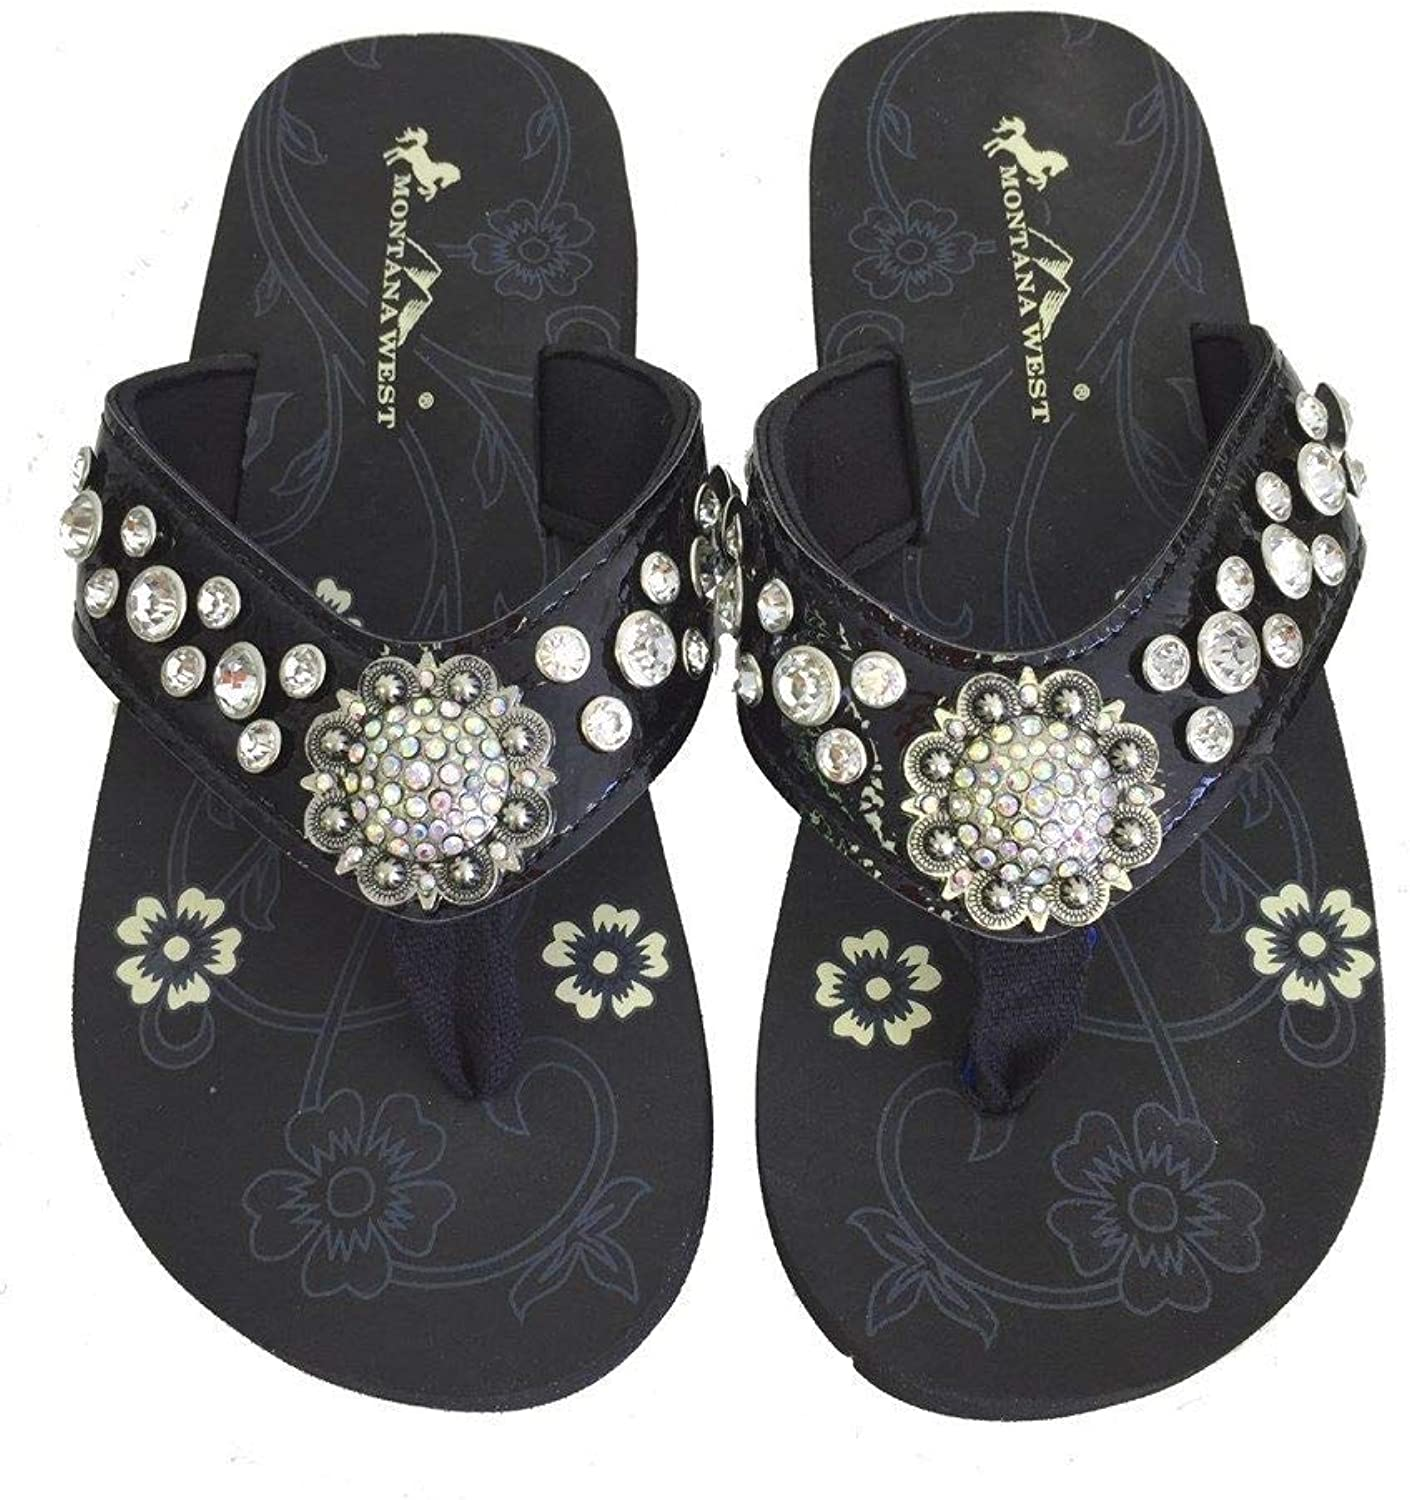 Montana West Women Flip Flops Shiny Bling Sandals Crystals Floral Concho Black